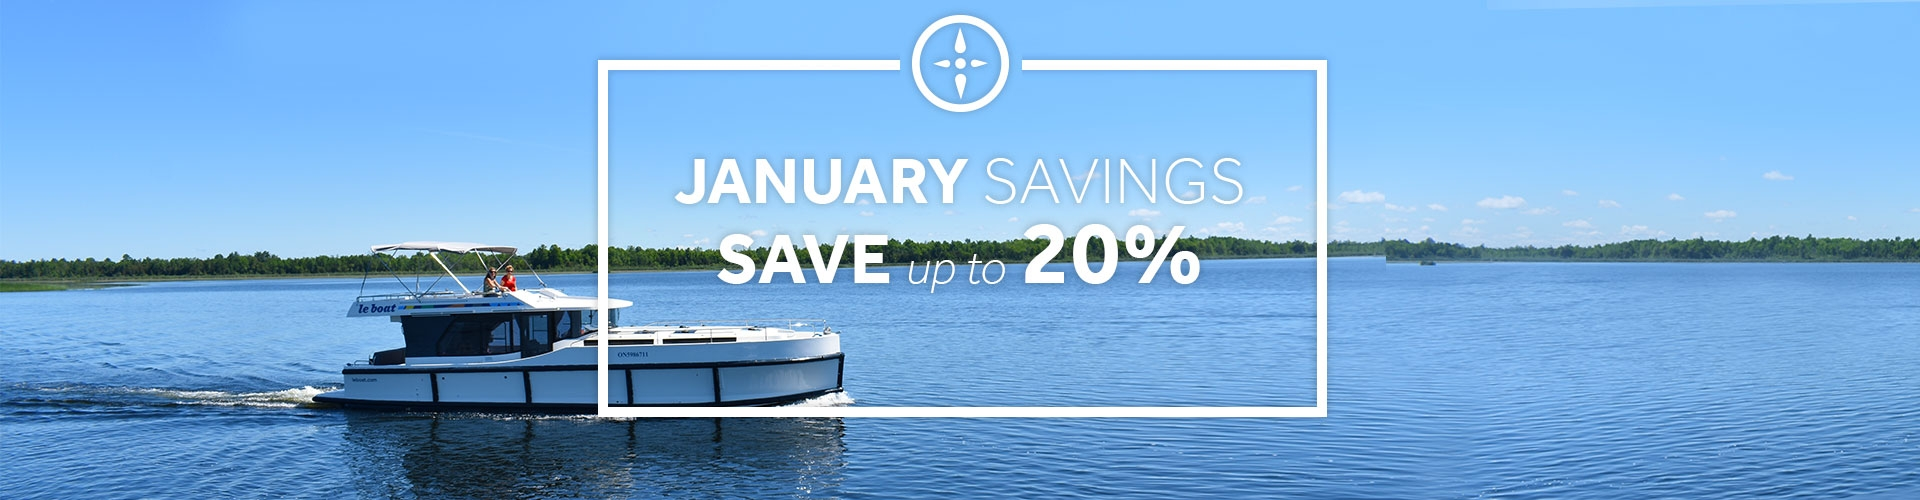 Le Boat - January Savings of up to 20%